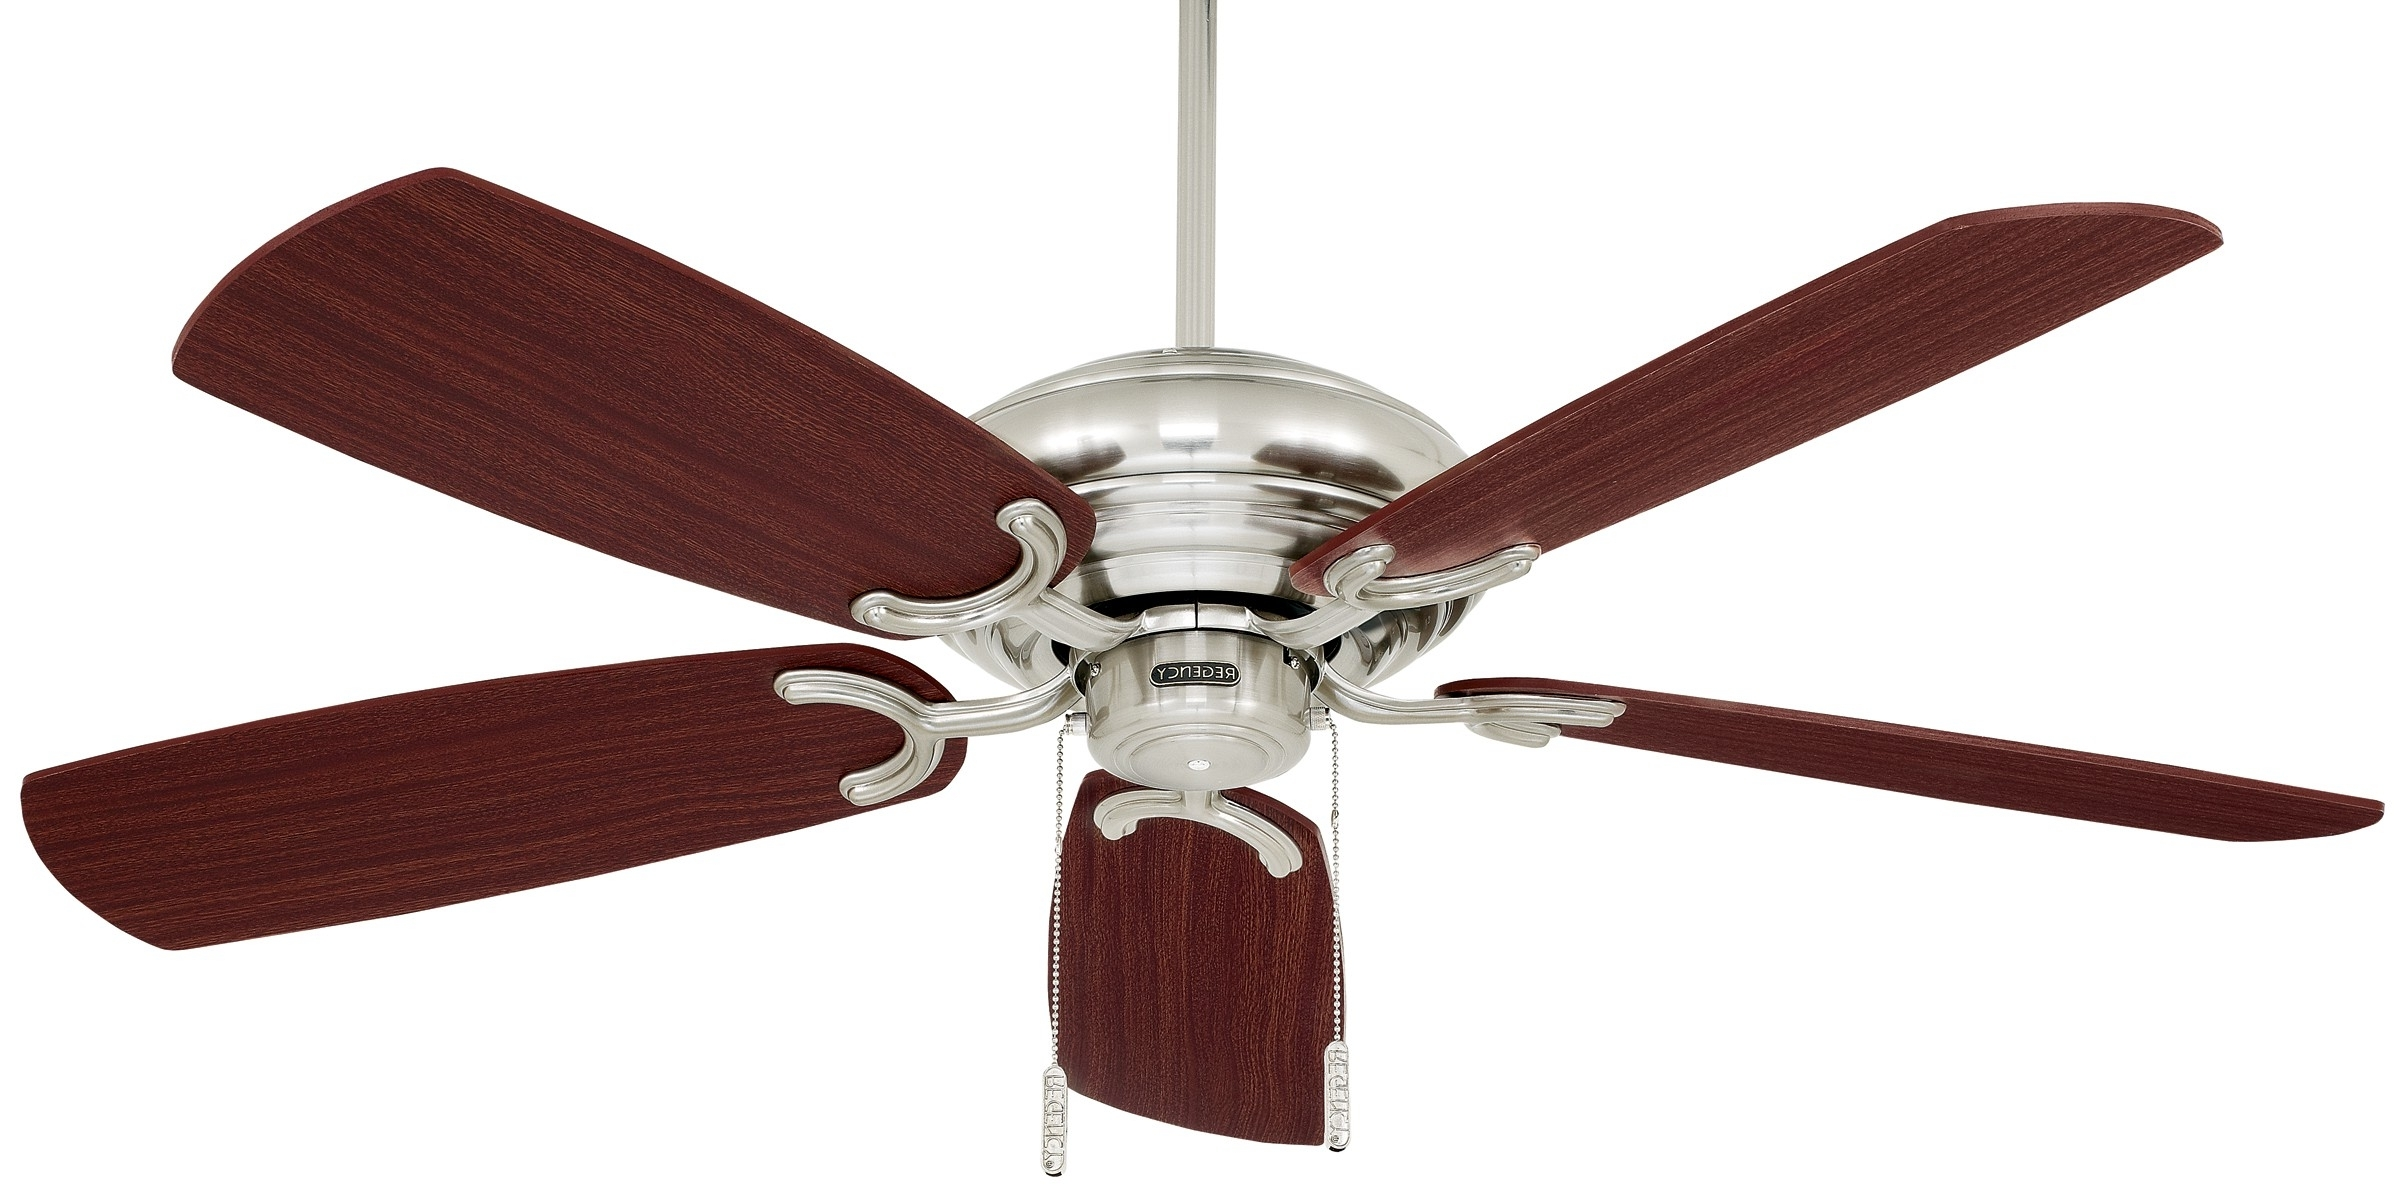 Outdoor Ceiling Fans With Uplights With Regard To Preferred Crammed Ceiling Fan With Uplight Envoy En2 Mood Glow Unipack (View 12 of 20)